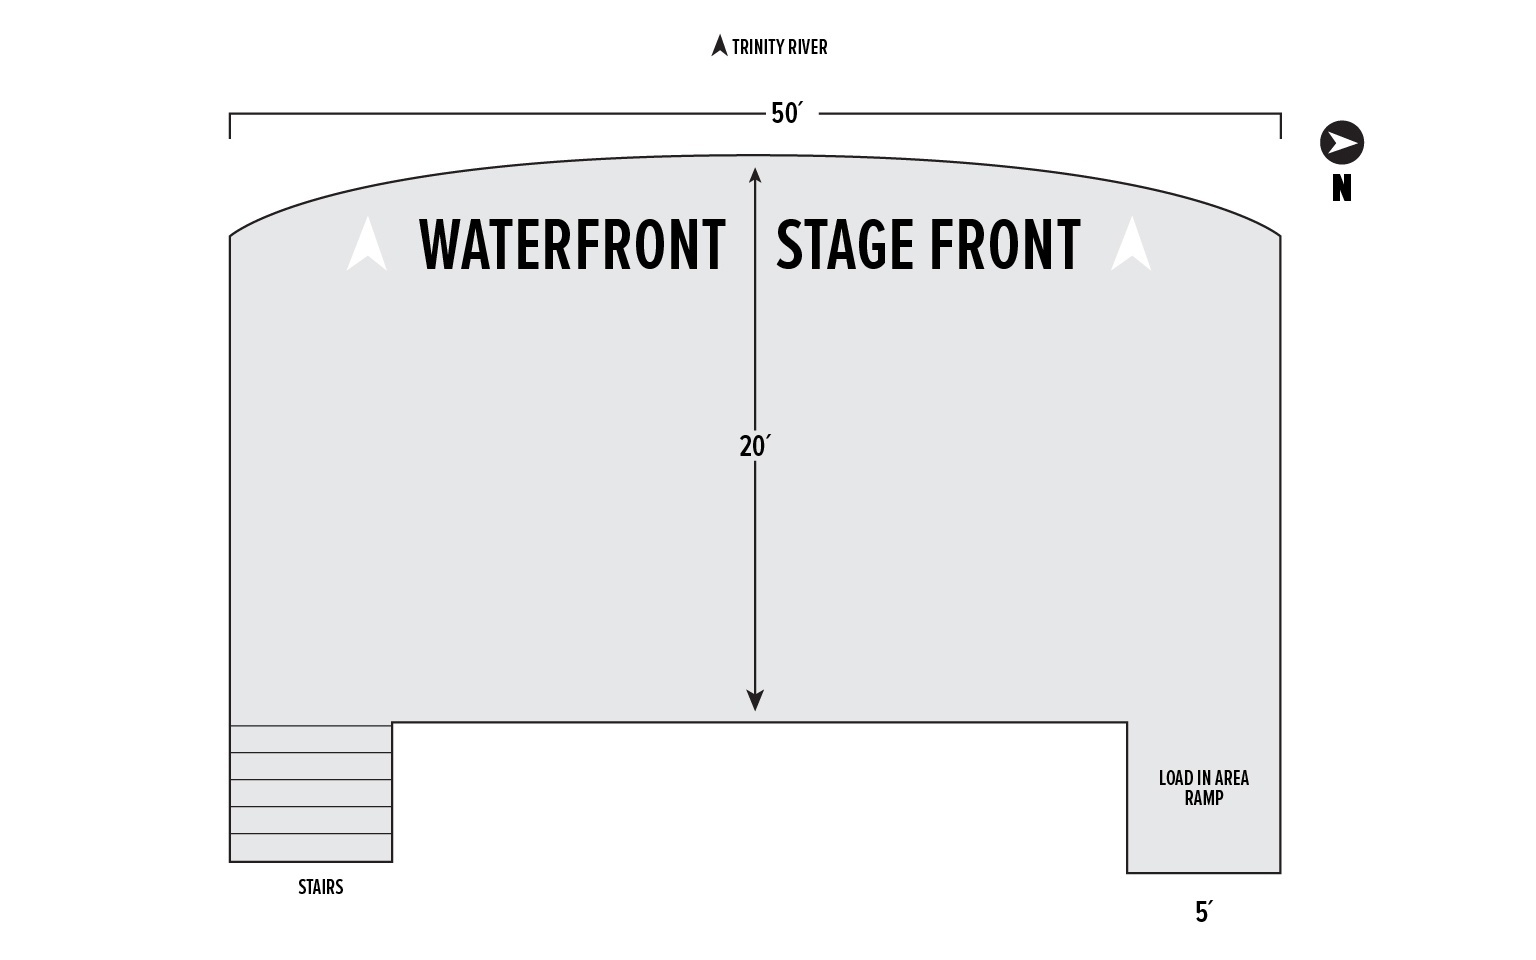 South Shore Stage Diagram at Panther Island Pavilion